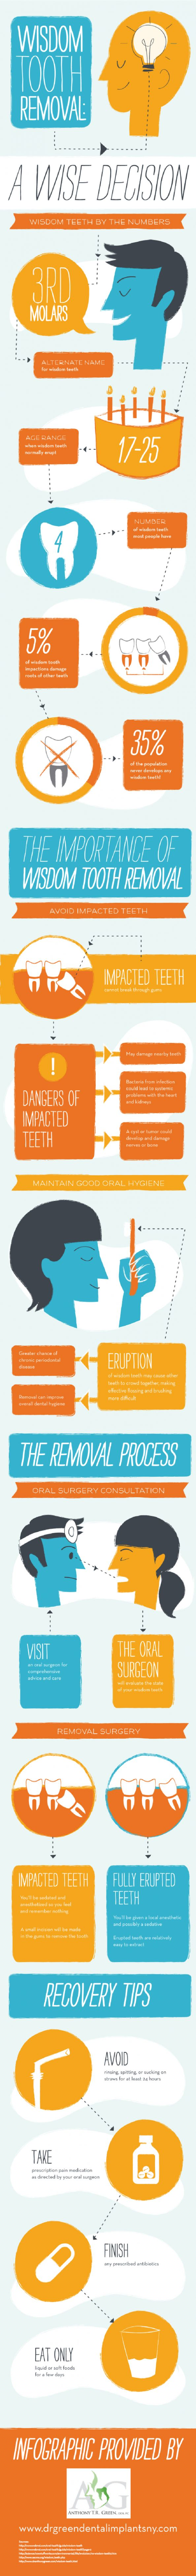 Wisdom Tooth Removal: A Wise Move Infographic #dentaltips Giggles  Grins Pediatric Dentistry   #Southlake   #TX   www.gigglesandgrins.org